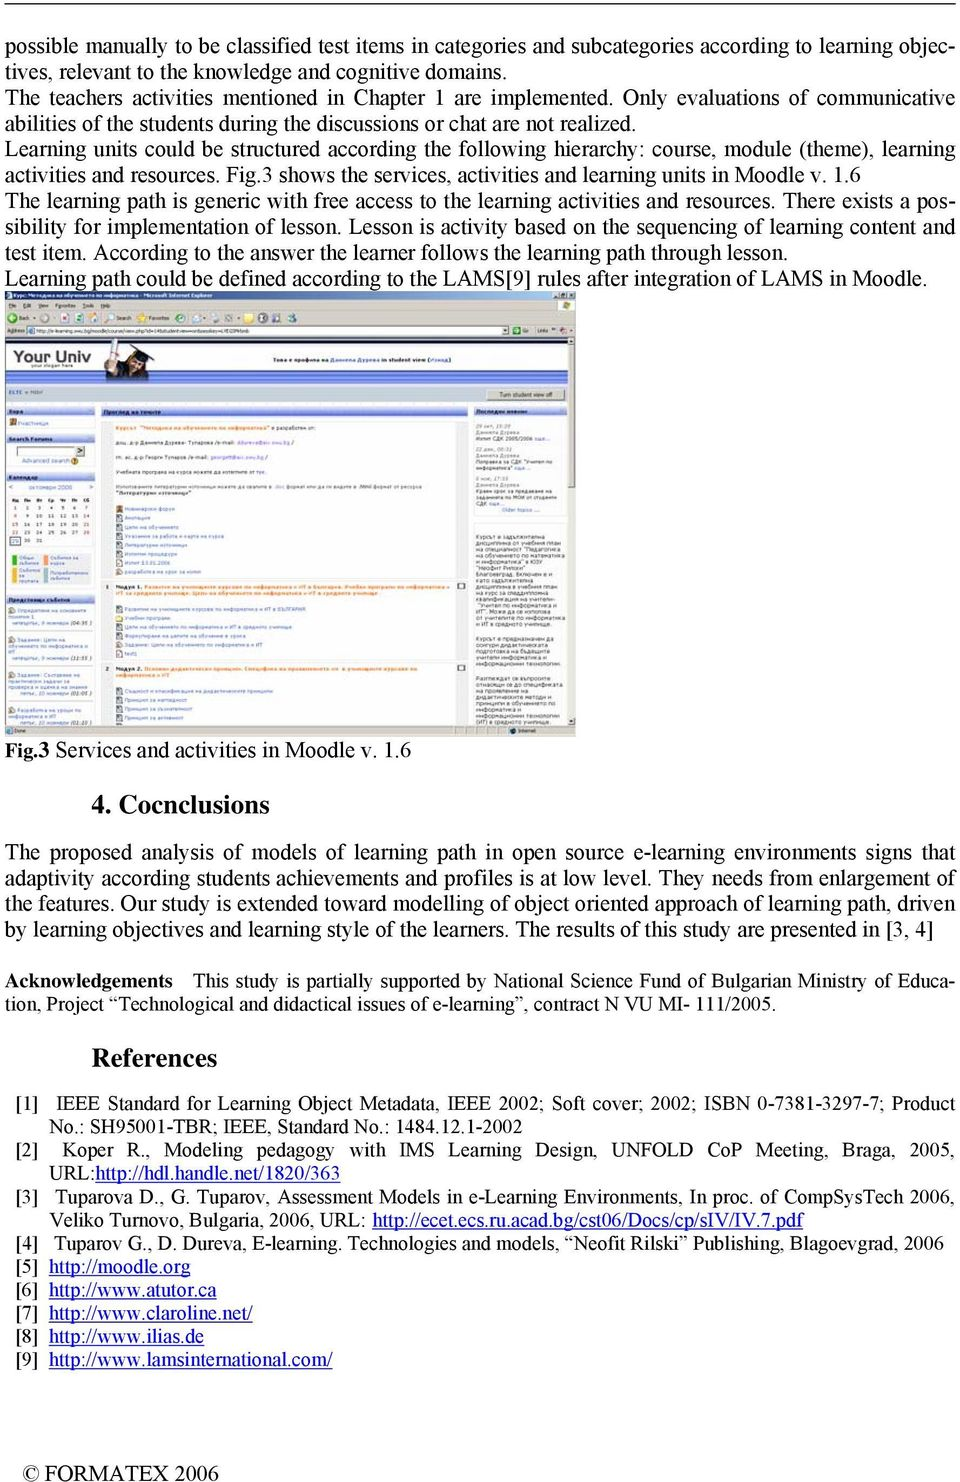 Learning units could be structured according the following hierarchy: course, module (theme), learning activities and resources. Fig.3 shows the services, activities and learning units in Moodle v. 1.